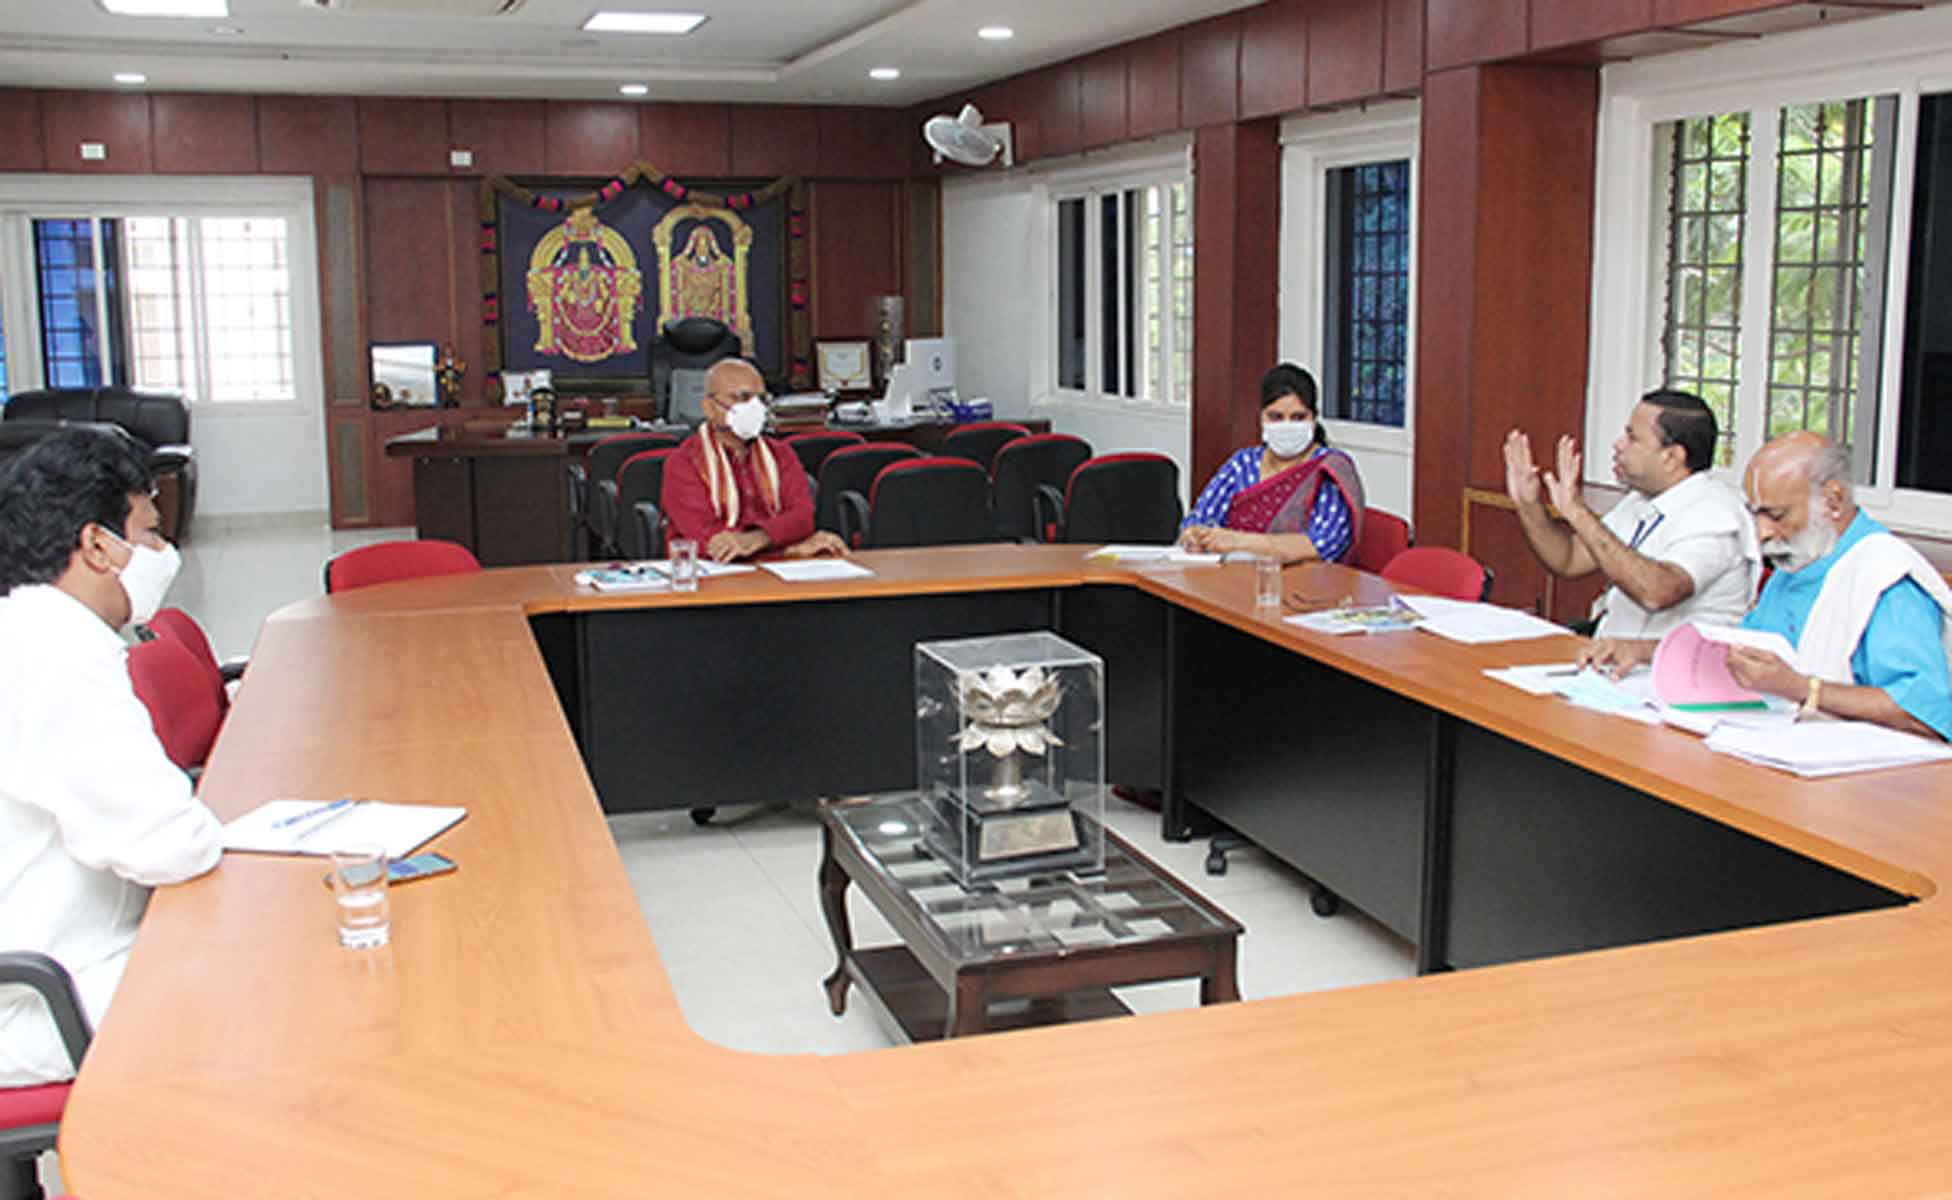 EXPERTS COMMITTEE TO ENHANCE QUALITY OF EDUCATION IN TTD EDUCATIONAL INSTITUTIONSEXPERTS COMMITTEE TO ENHANCE QUALITY OF EDUCATION IN TTD EDUCATIONAL INSTITUTIONS